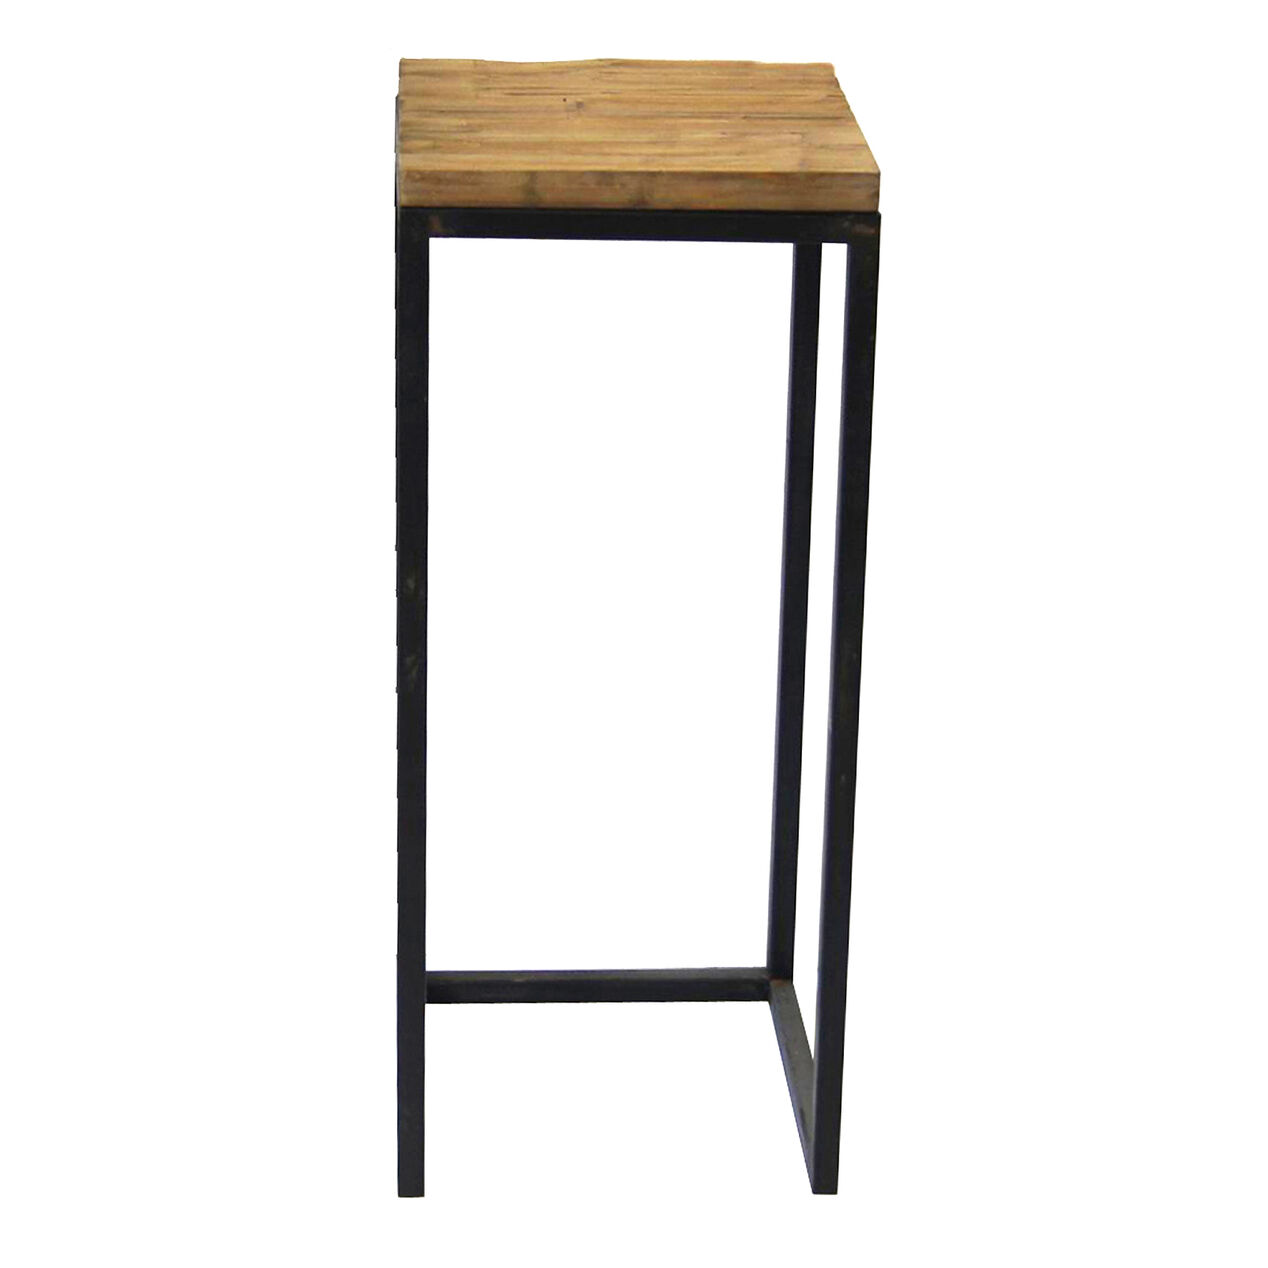 Wood Top Metal Plant Stand Large Sold Separately At Home